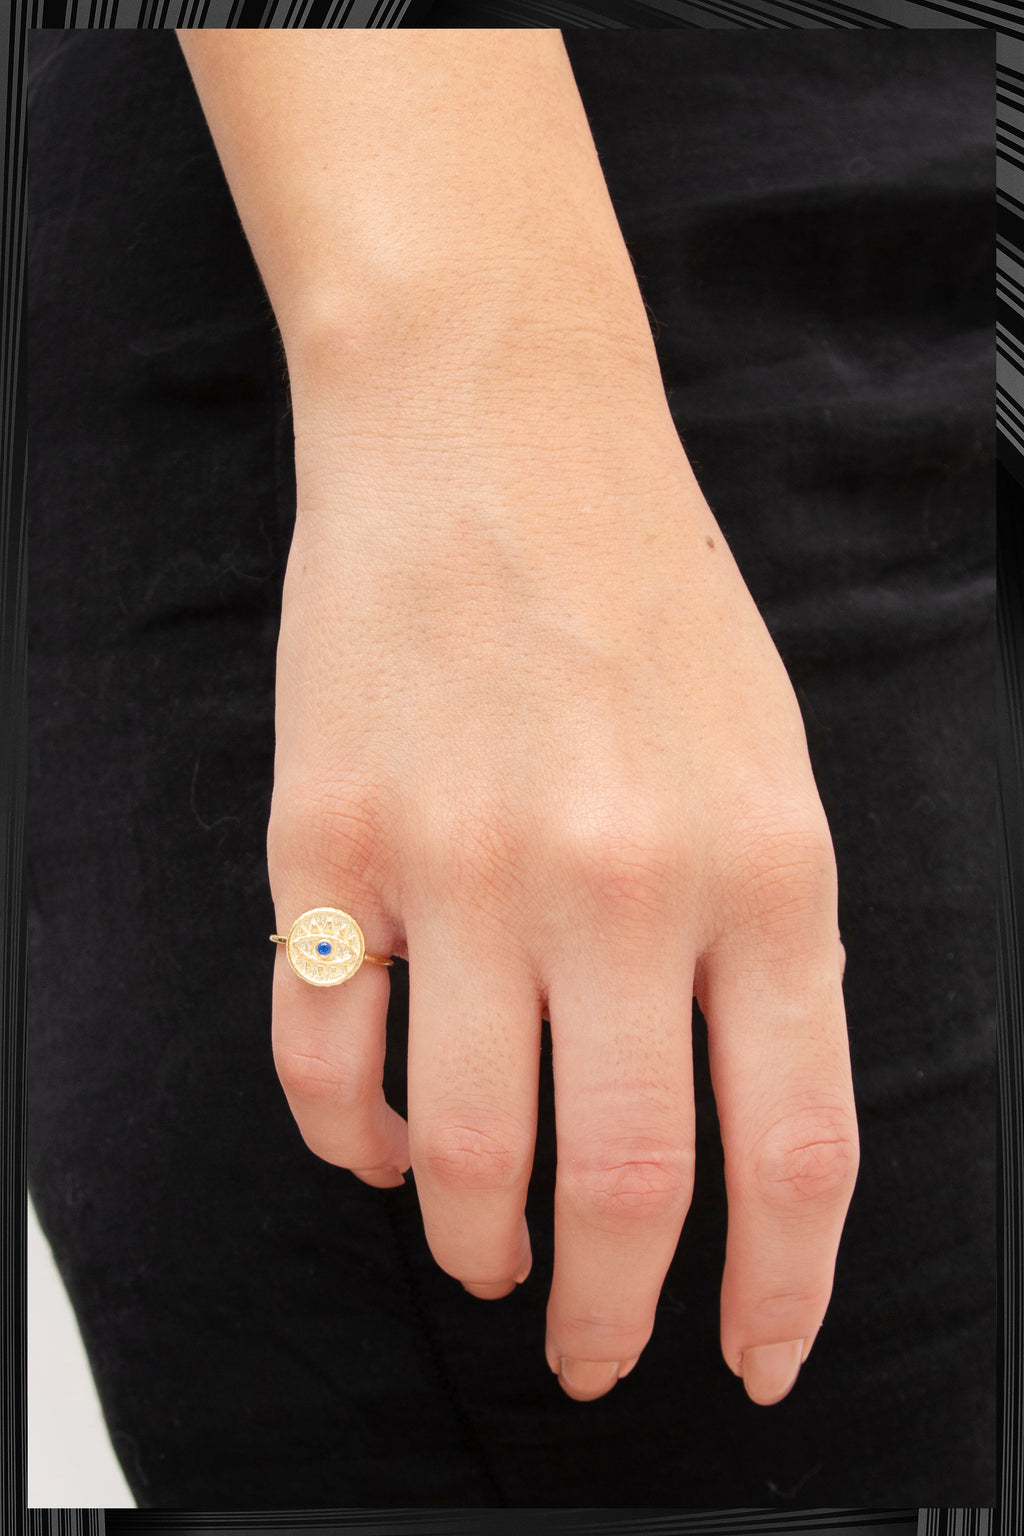 Blue Evil Eye Ring | Free Delivery - Quick Shipping